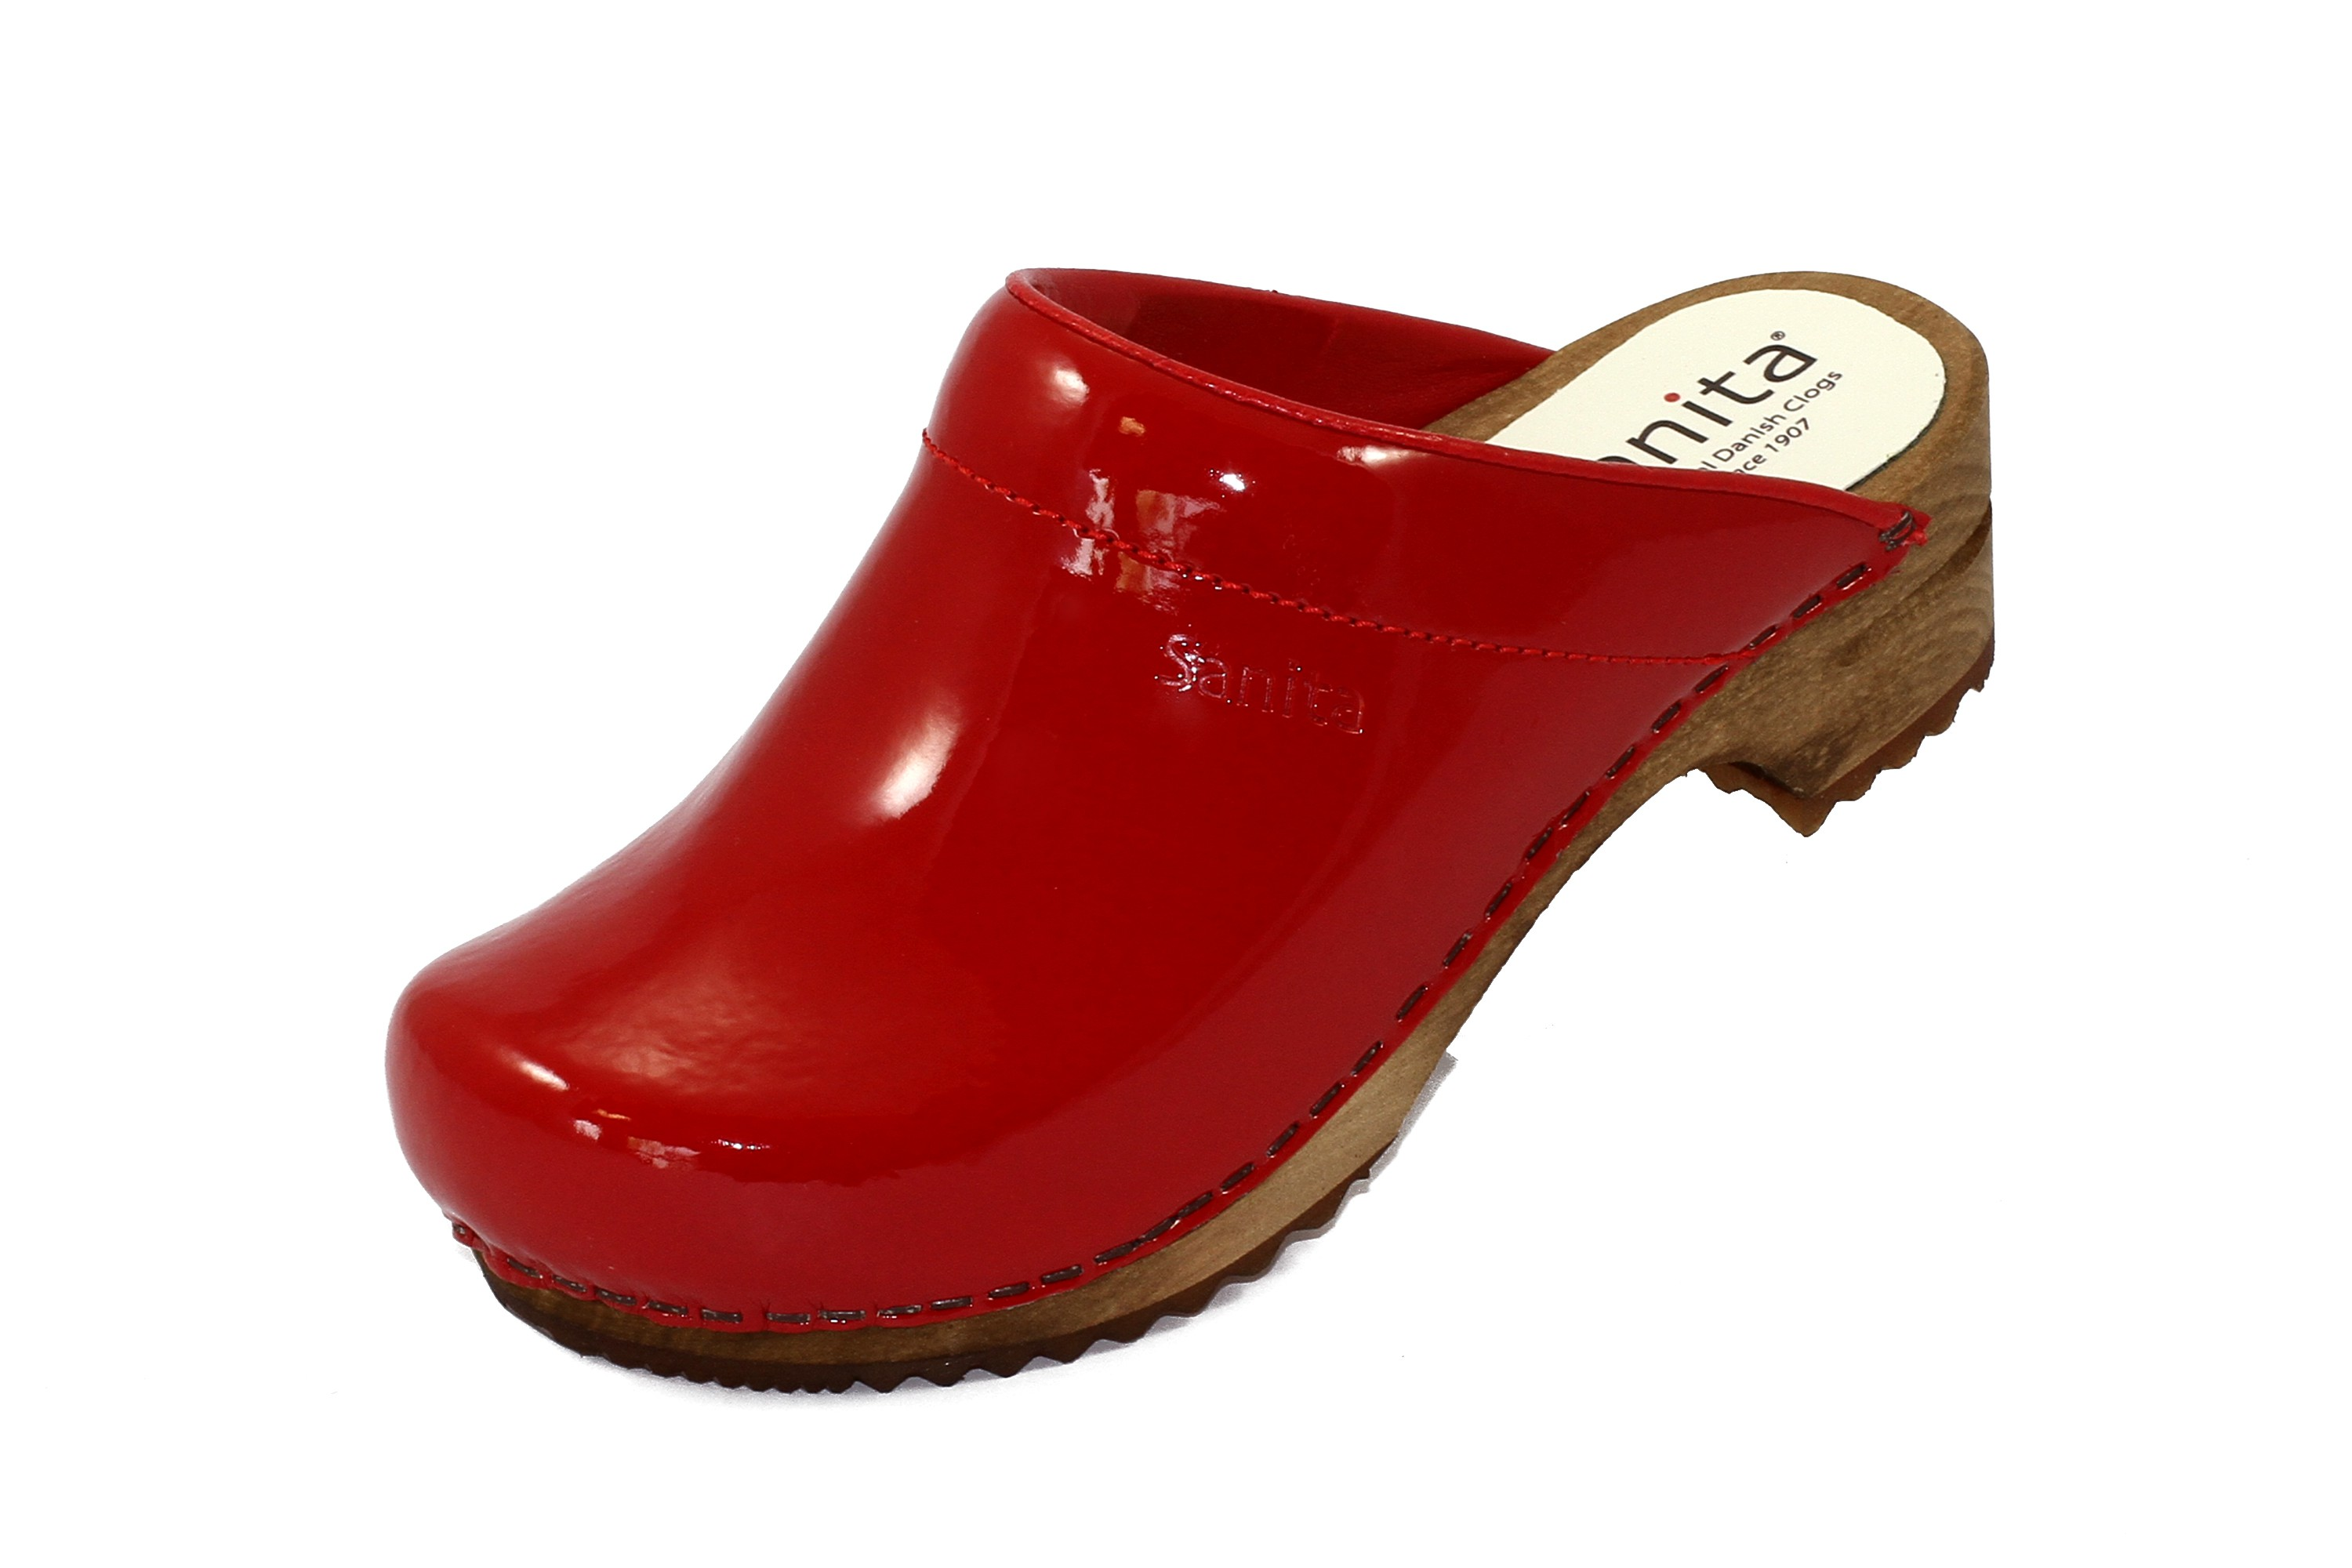 sanita designer clogs classic in rot gl nzend mit holzsohle offen shopverkaufsware schuhe. Black Bedroom Furniture Sets. Home Design Ideas